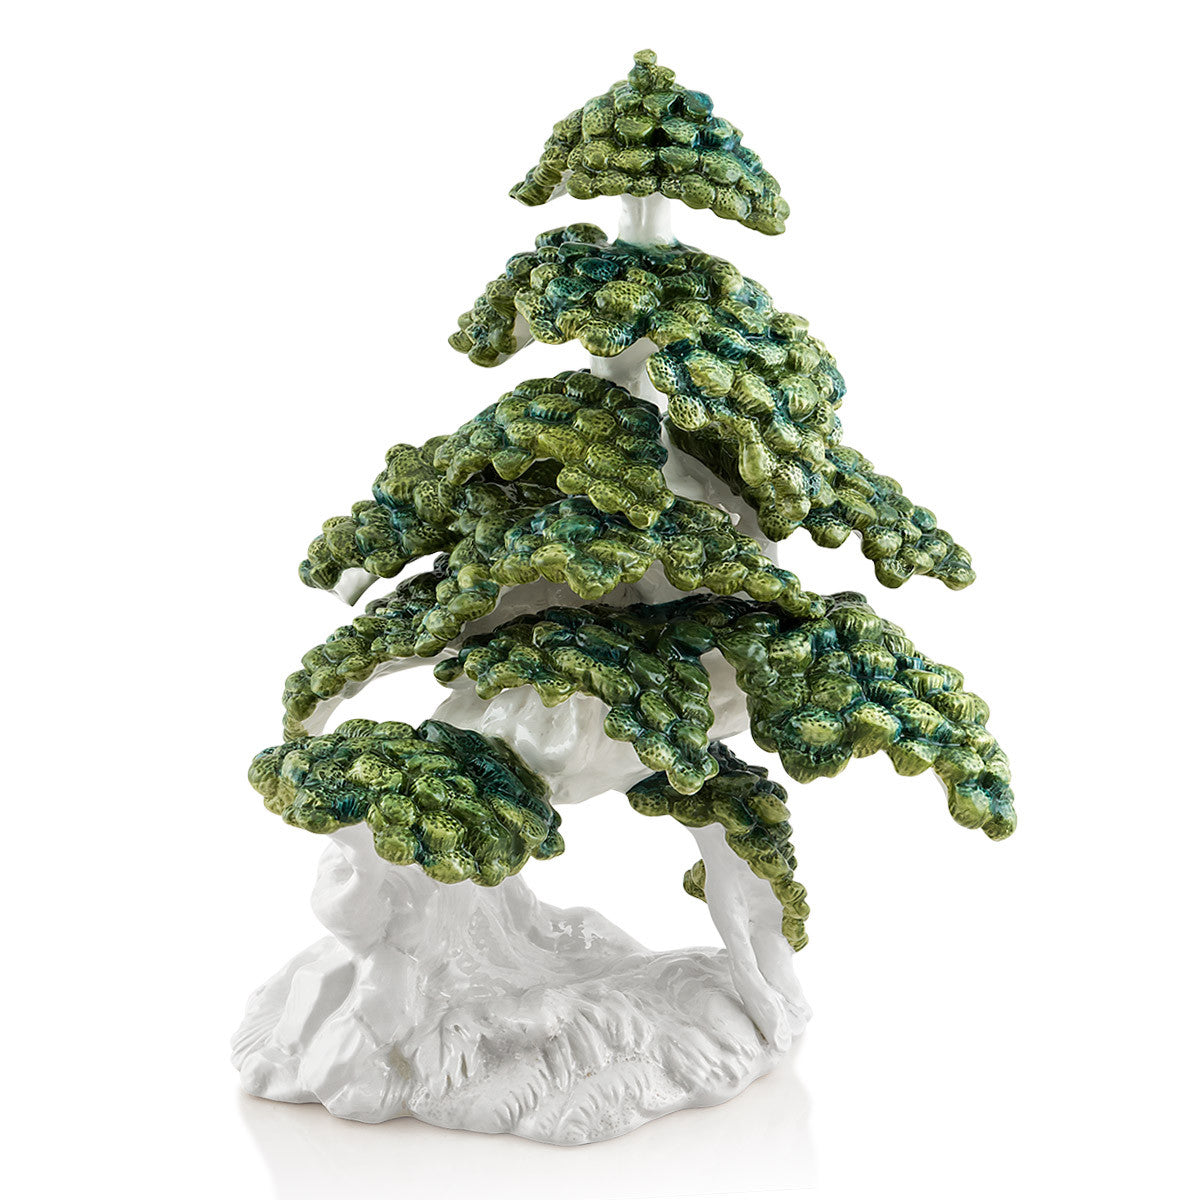 ceramic bonsai-bonsai tree collection-handmade-green color-miniature